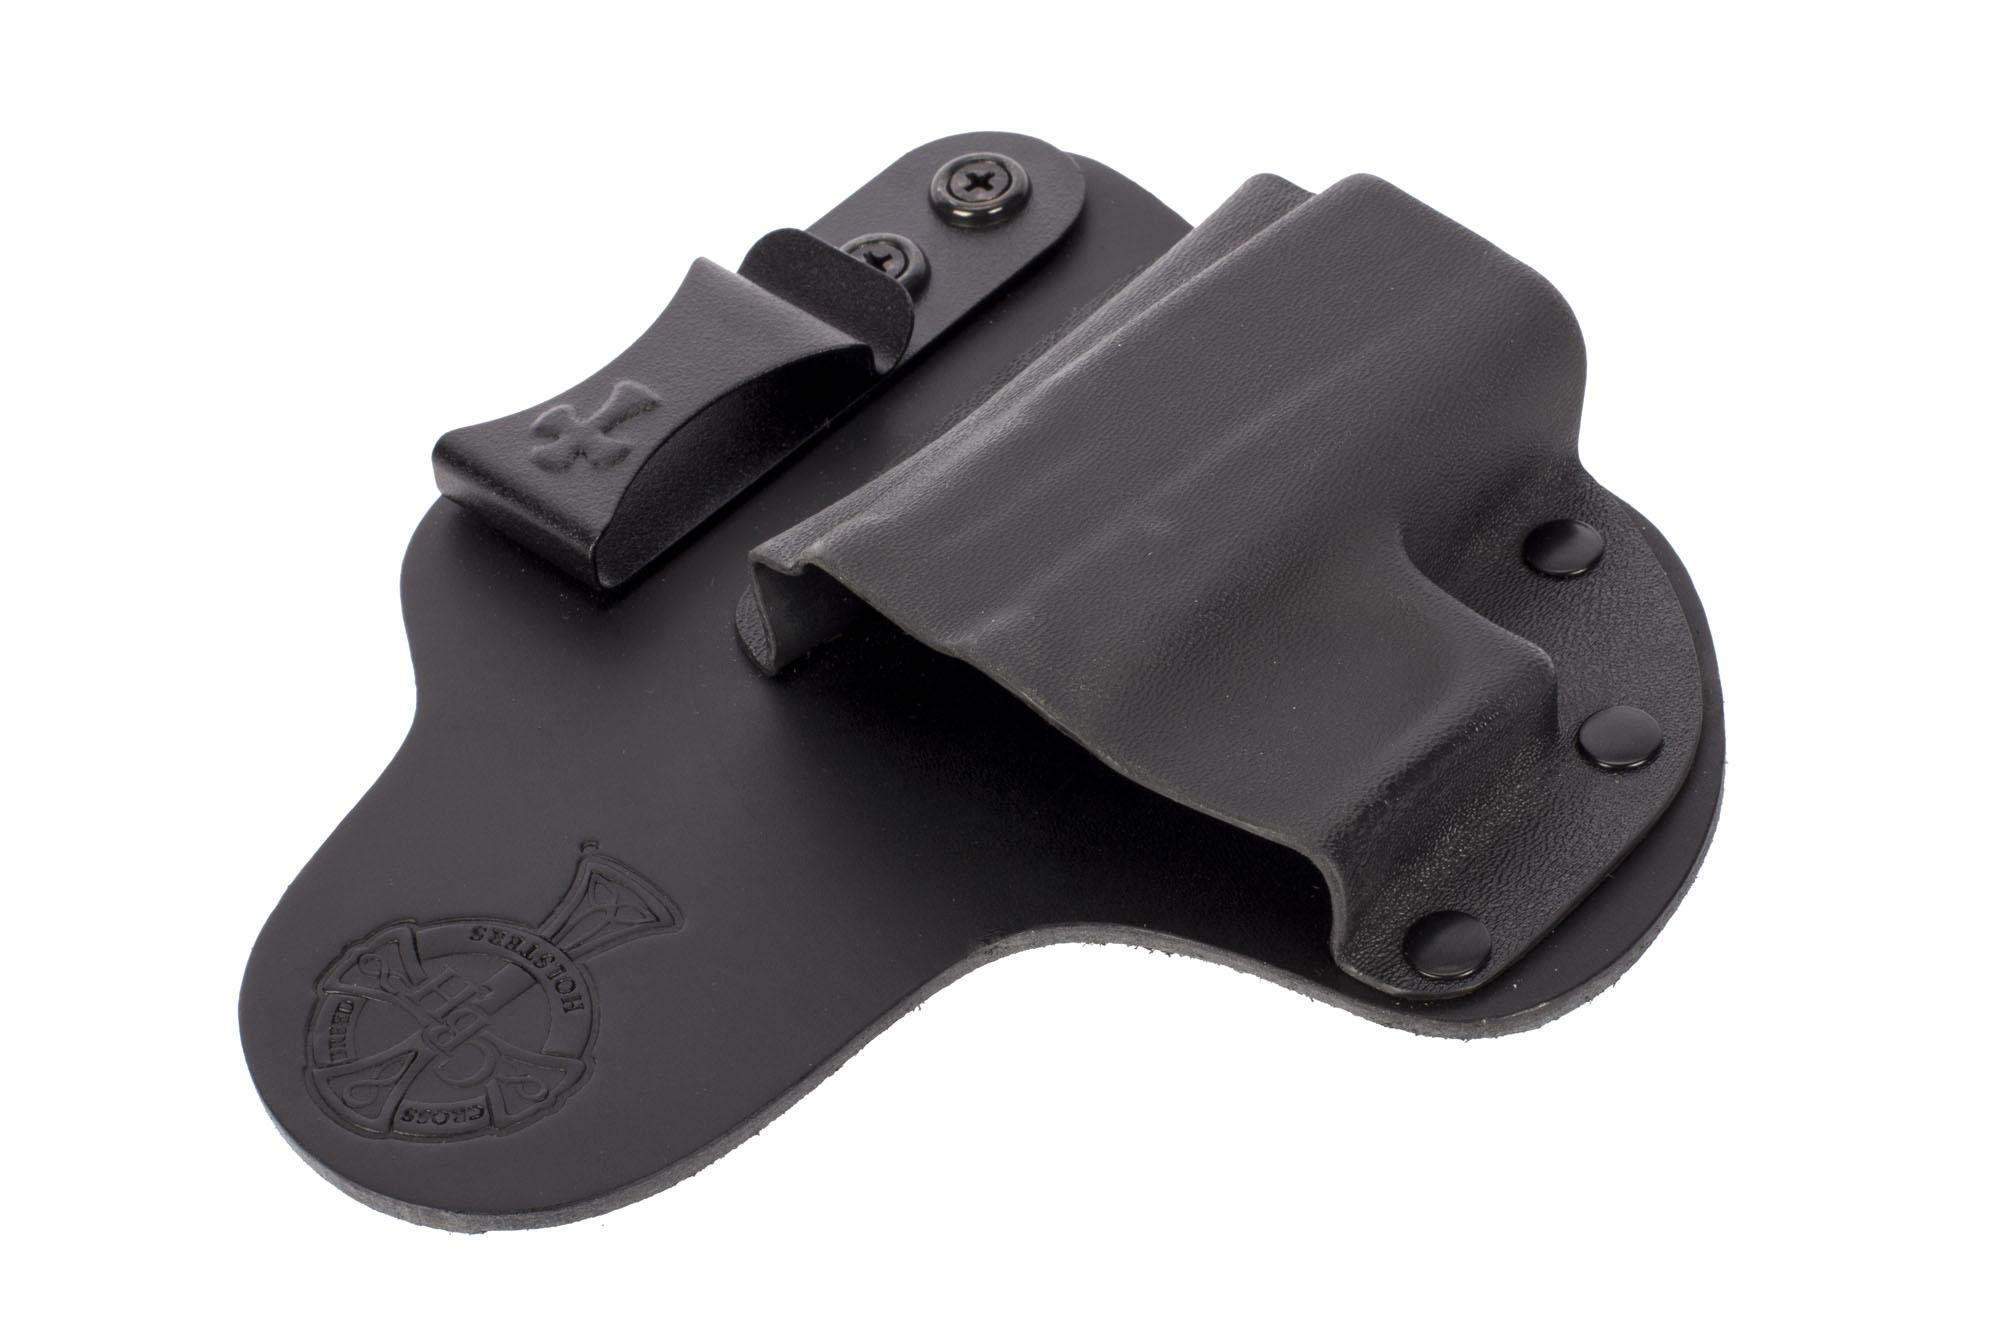 CrossBreed Holsters Appendix Carry IWB Holster - GLOCK 43 Compatible